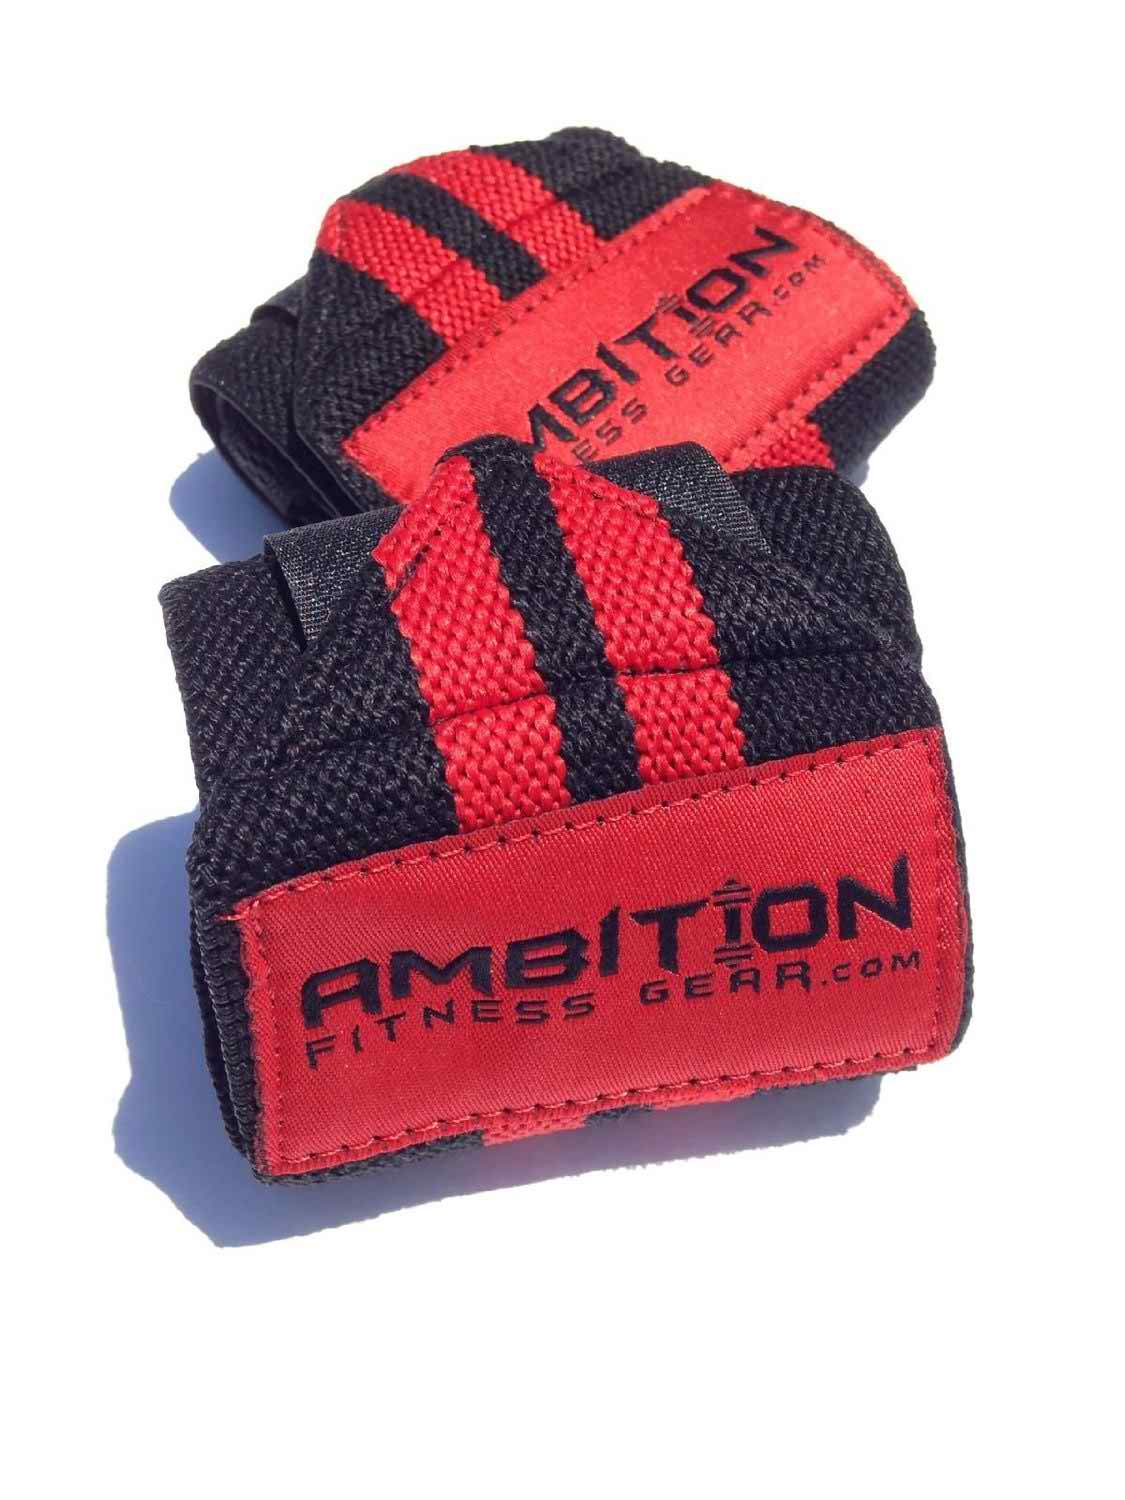 Wrist Wrap as a Good Workout Accessory That Reduces Muscle Strain